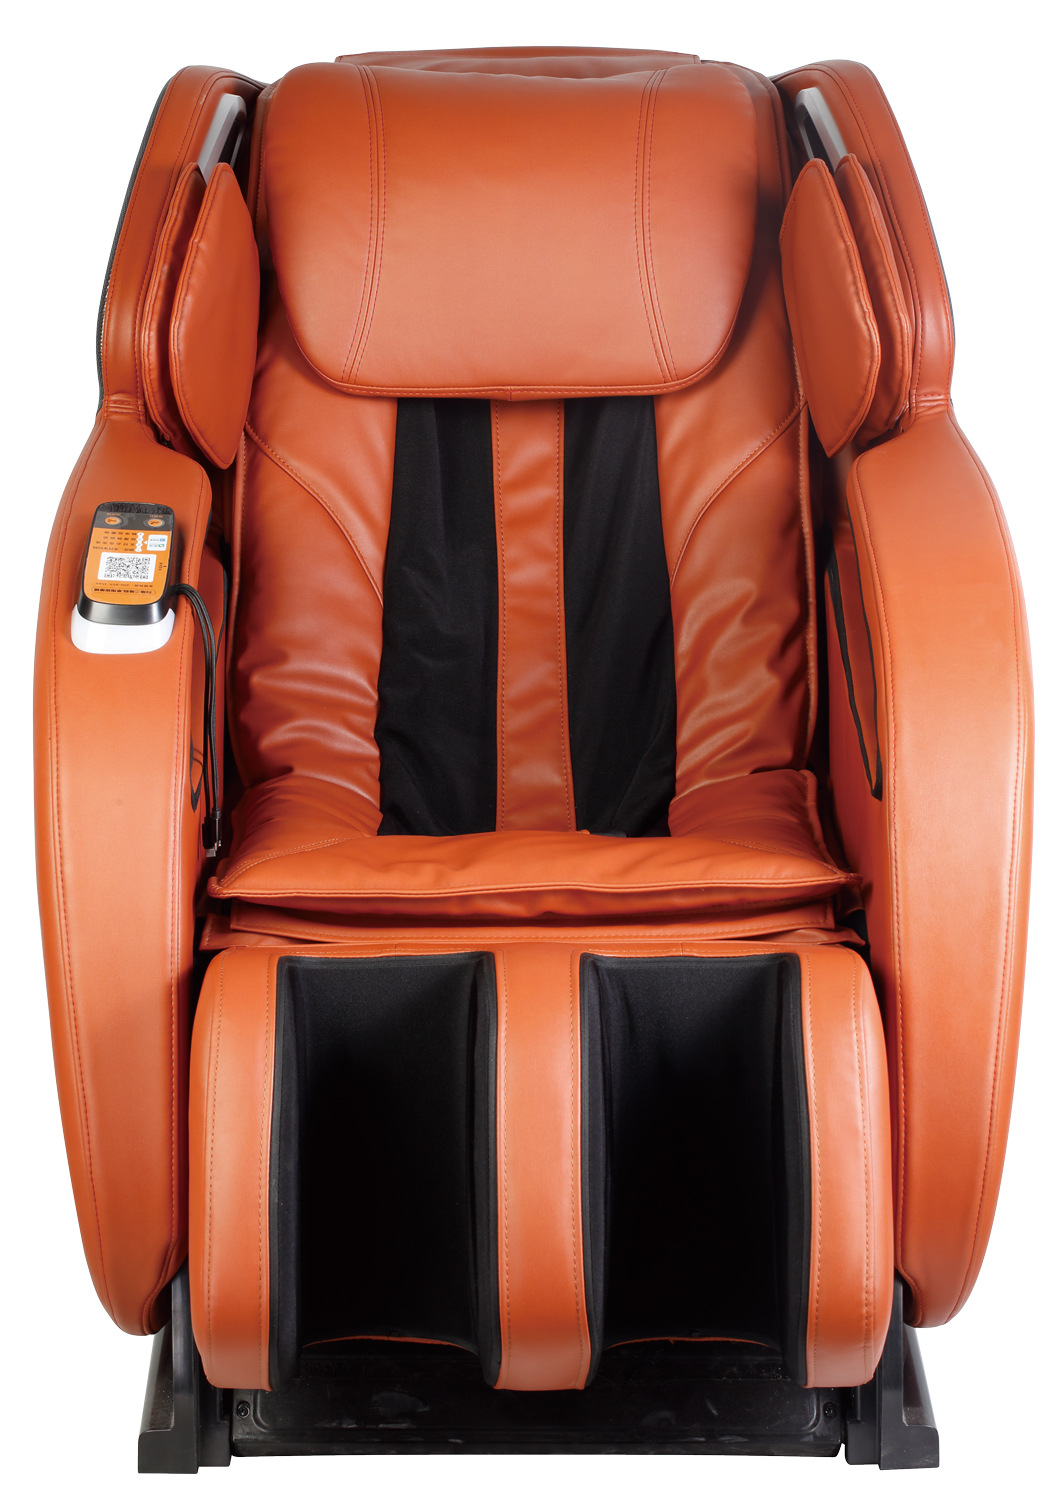 Supply Otis multifunctional Shared commercial massage chair-